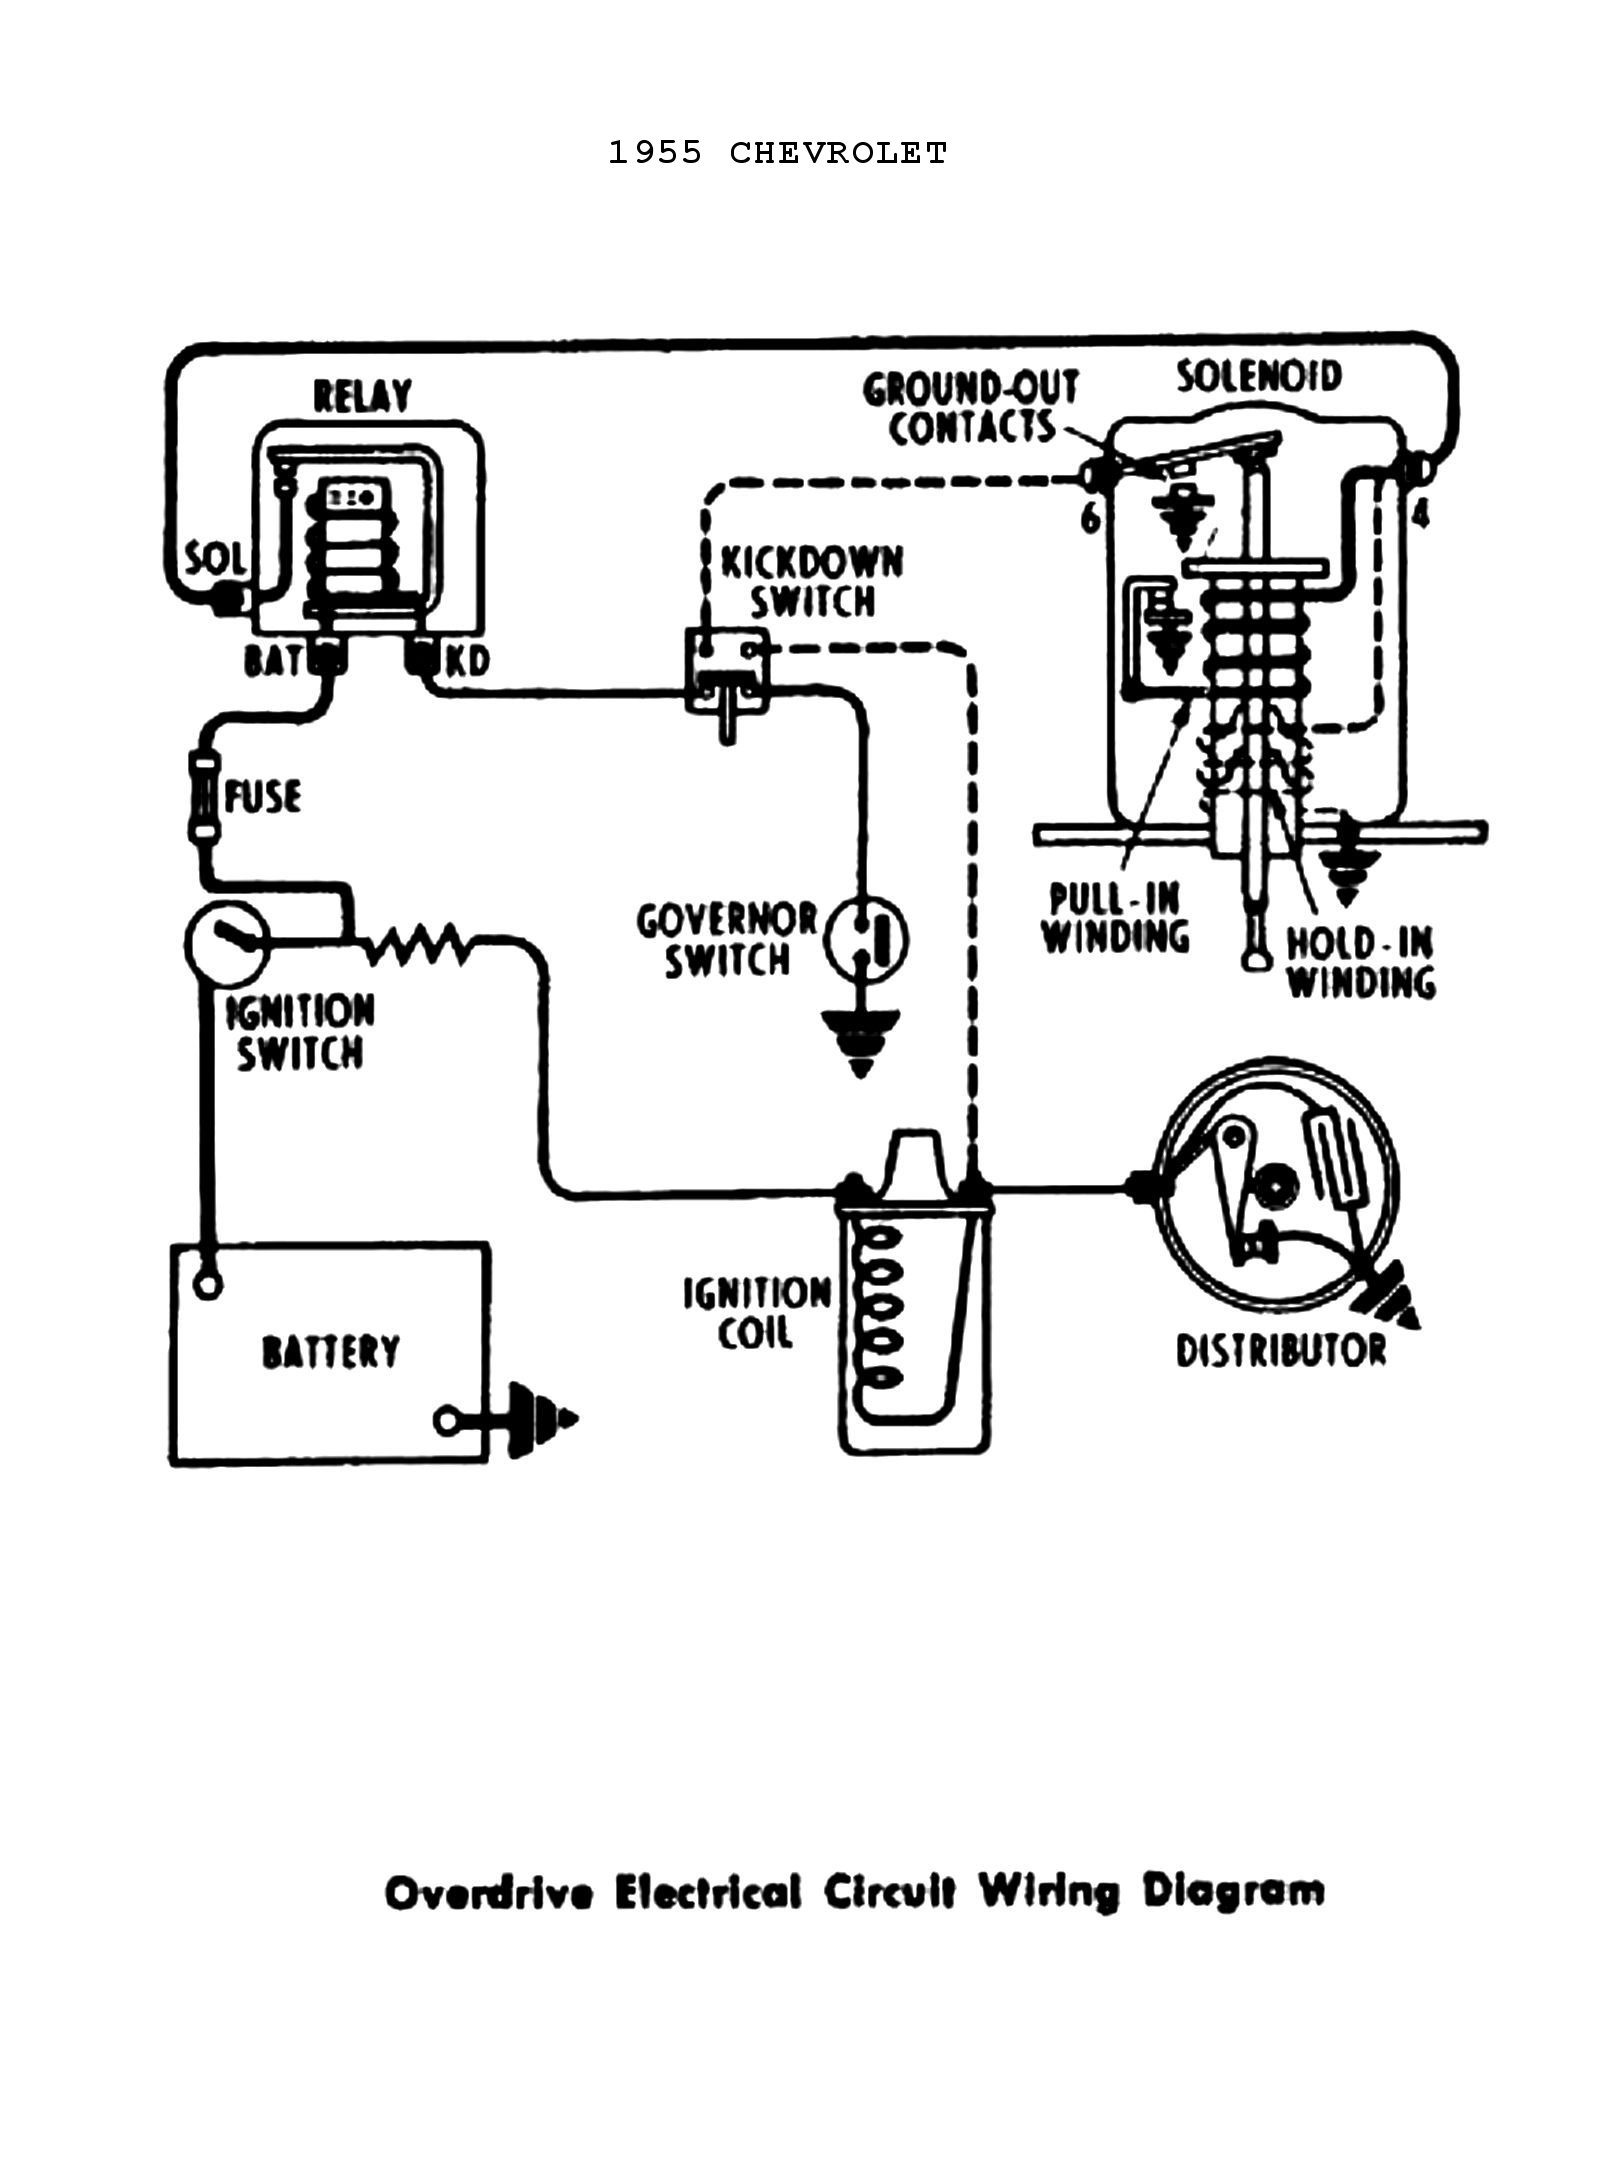 P 0900c152800764a9 also Magnavox Schematic Diagrams further RepairGuideContent additionally P 0900c152801c8670 besides Xor Gate Circuit Diagram. on lighting circuit wiring diagram